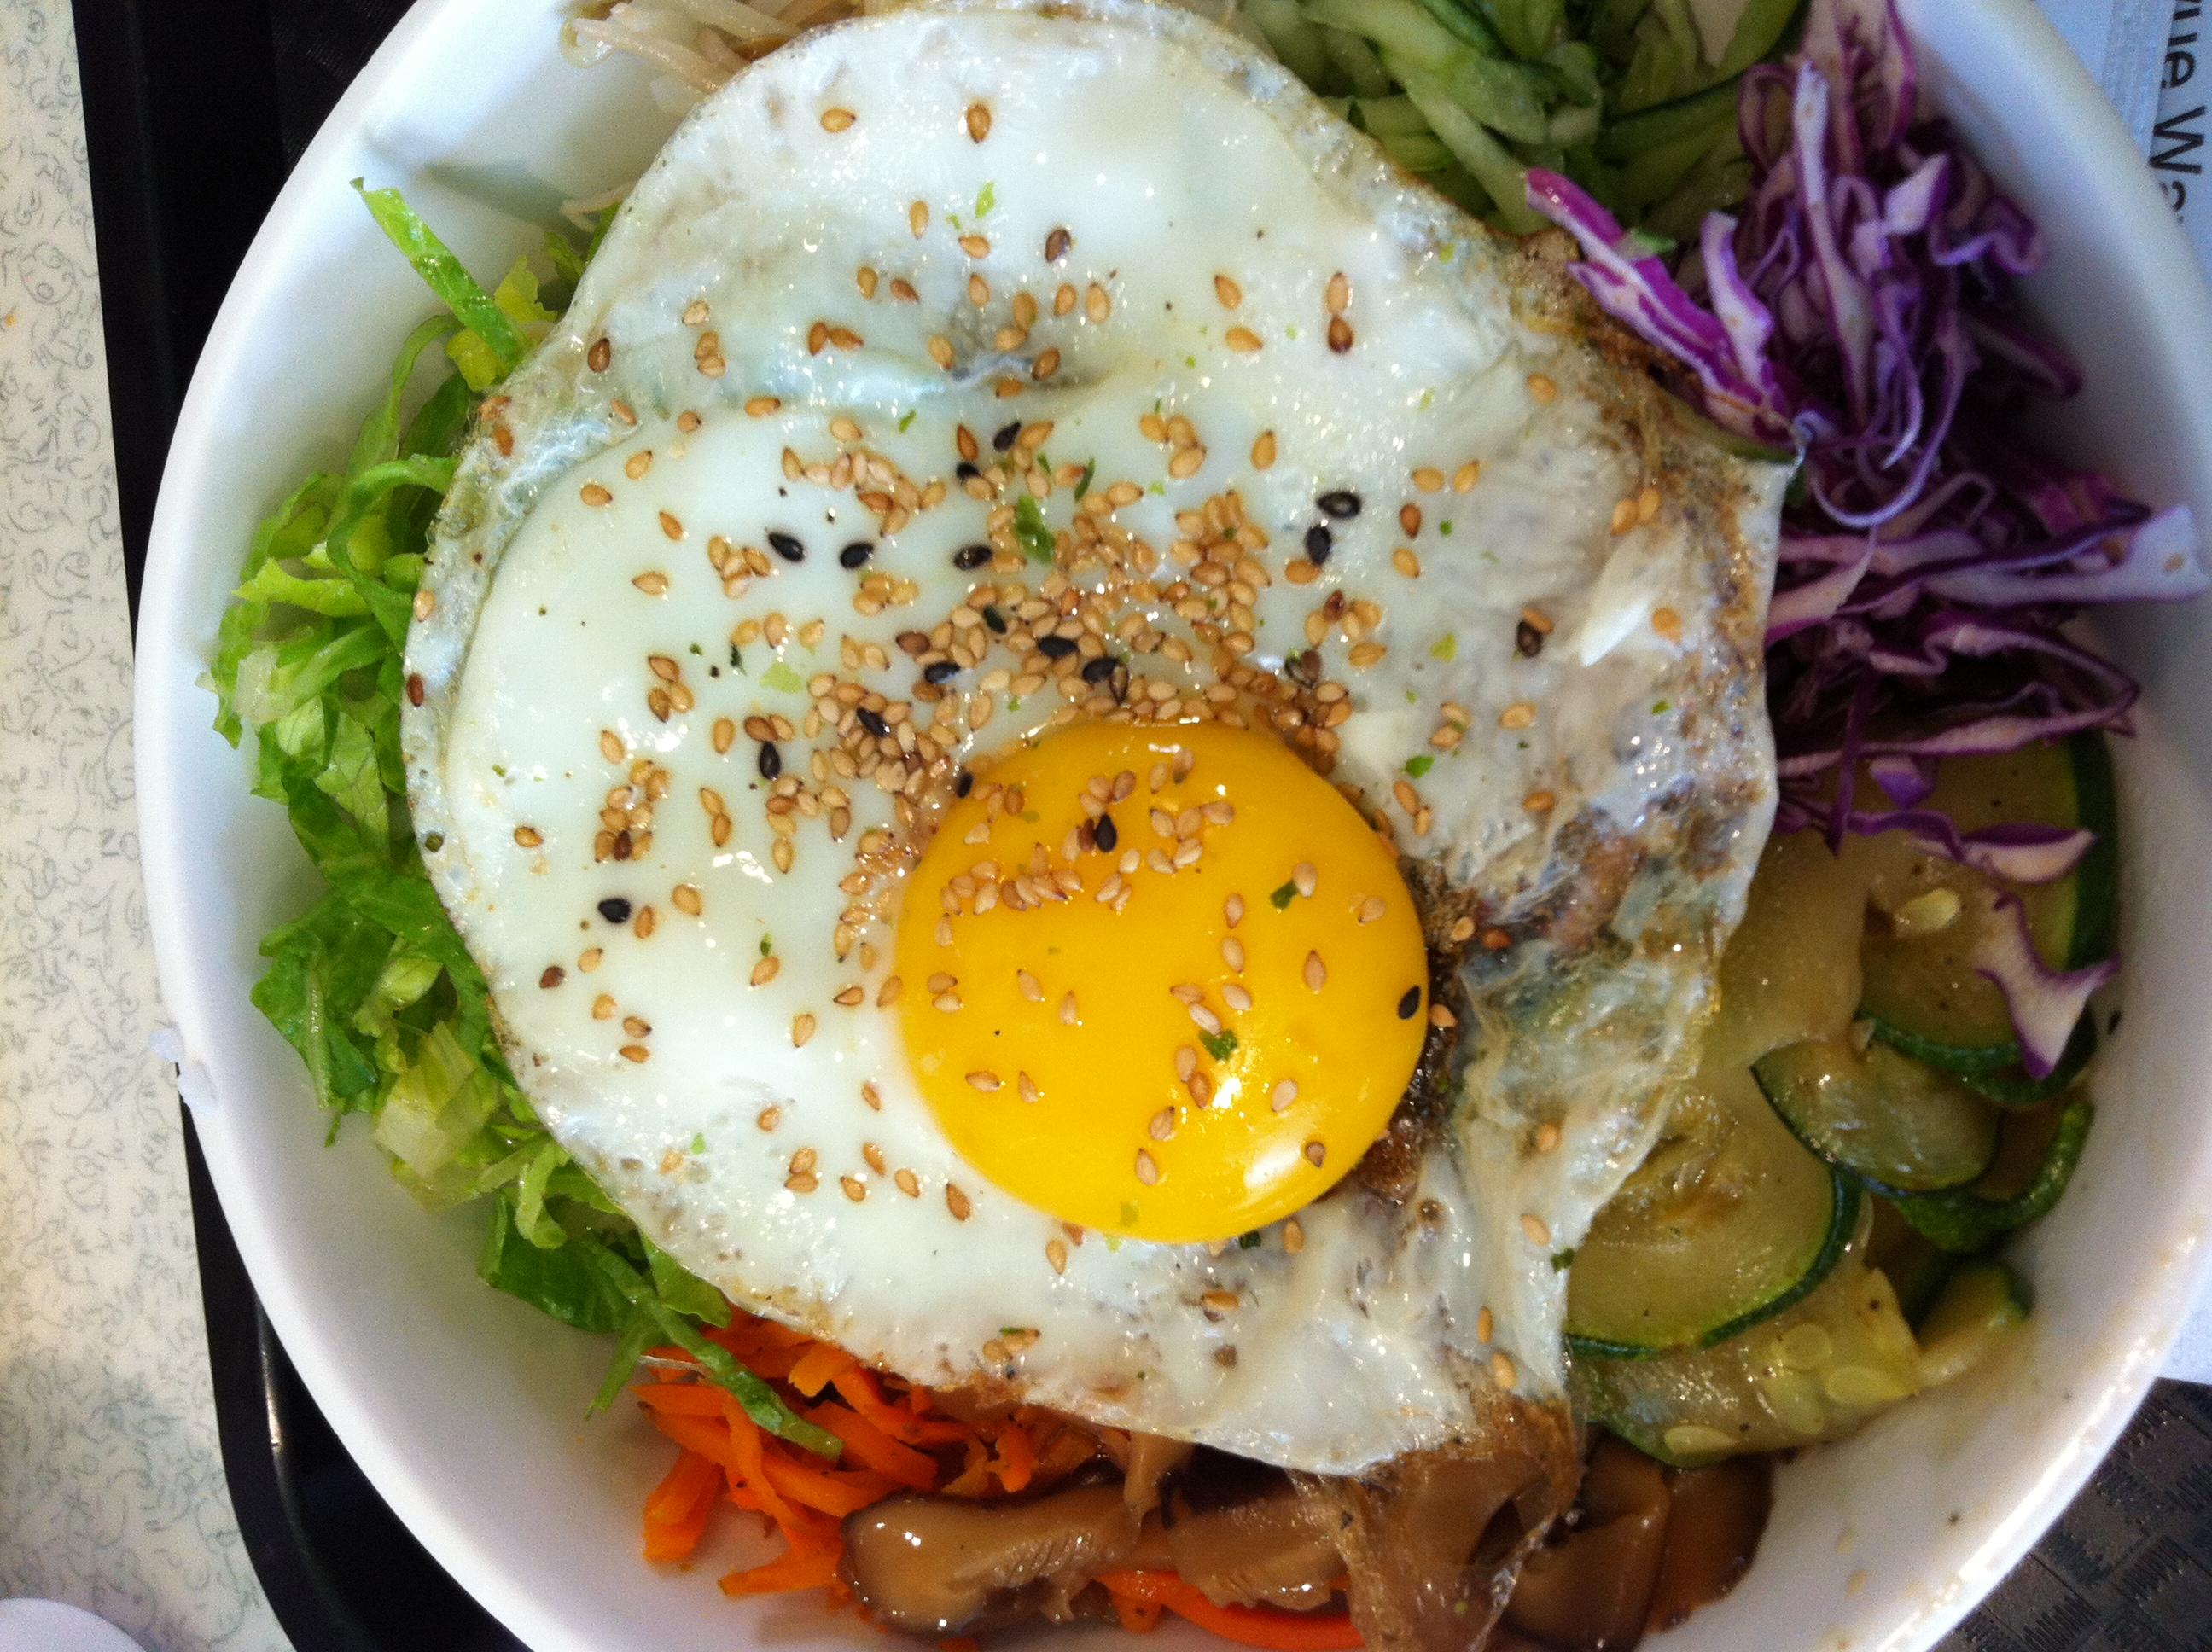 BELLEVUE – Korean Inspired Goodness in a Bowl at Oma Bap